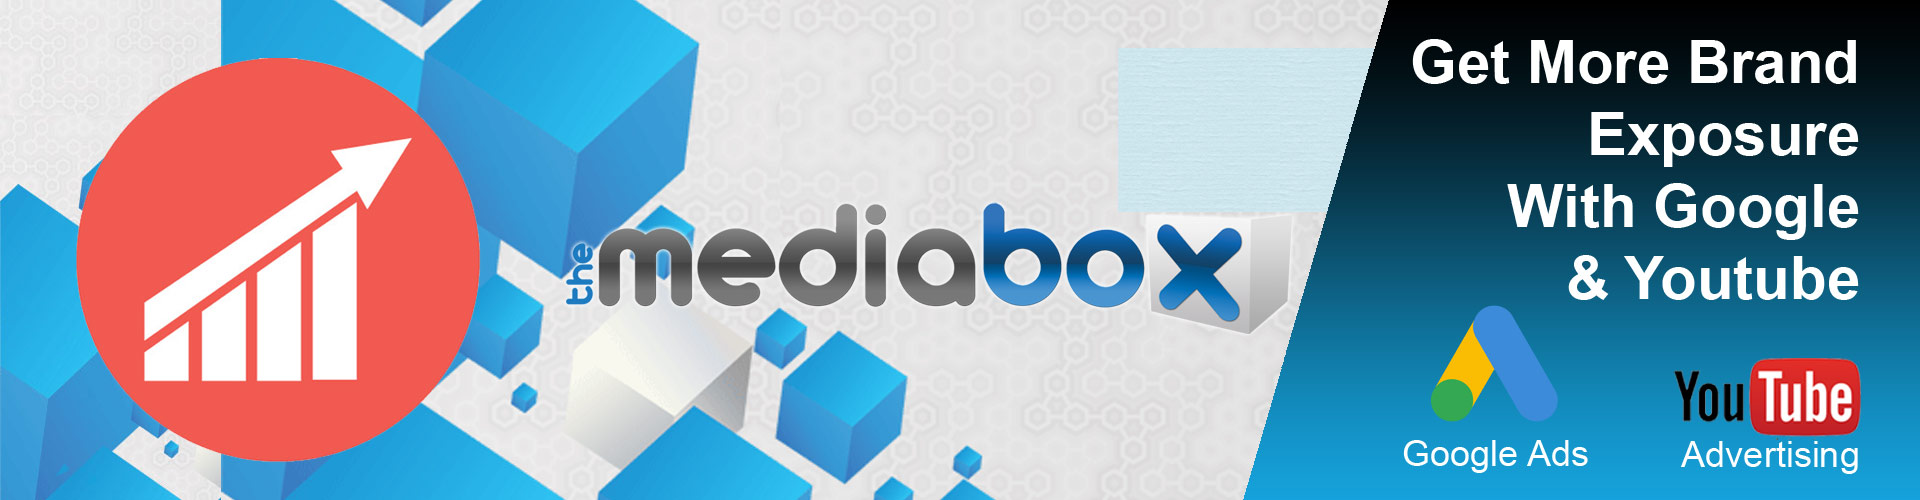 the-media-box-online-advertising-slider2